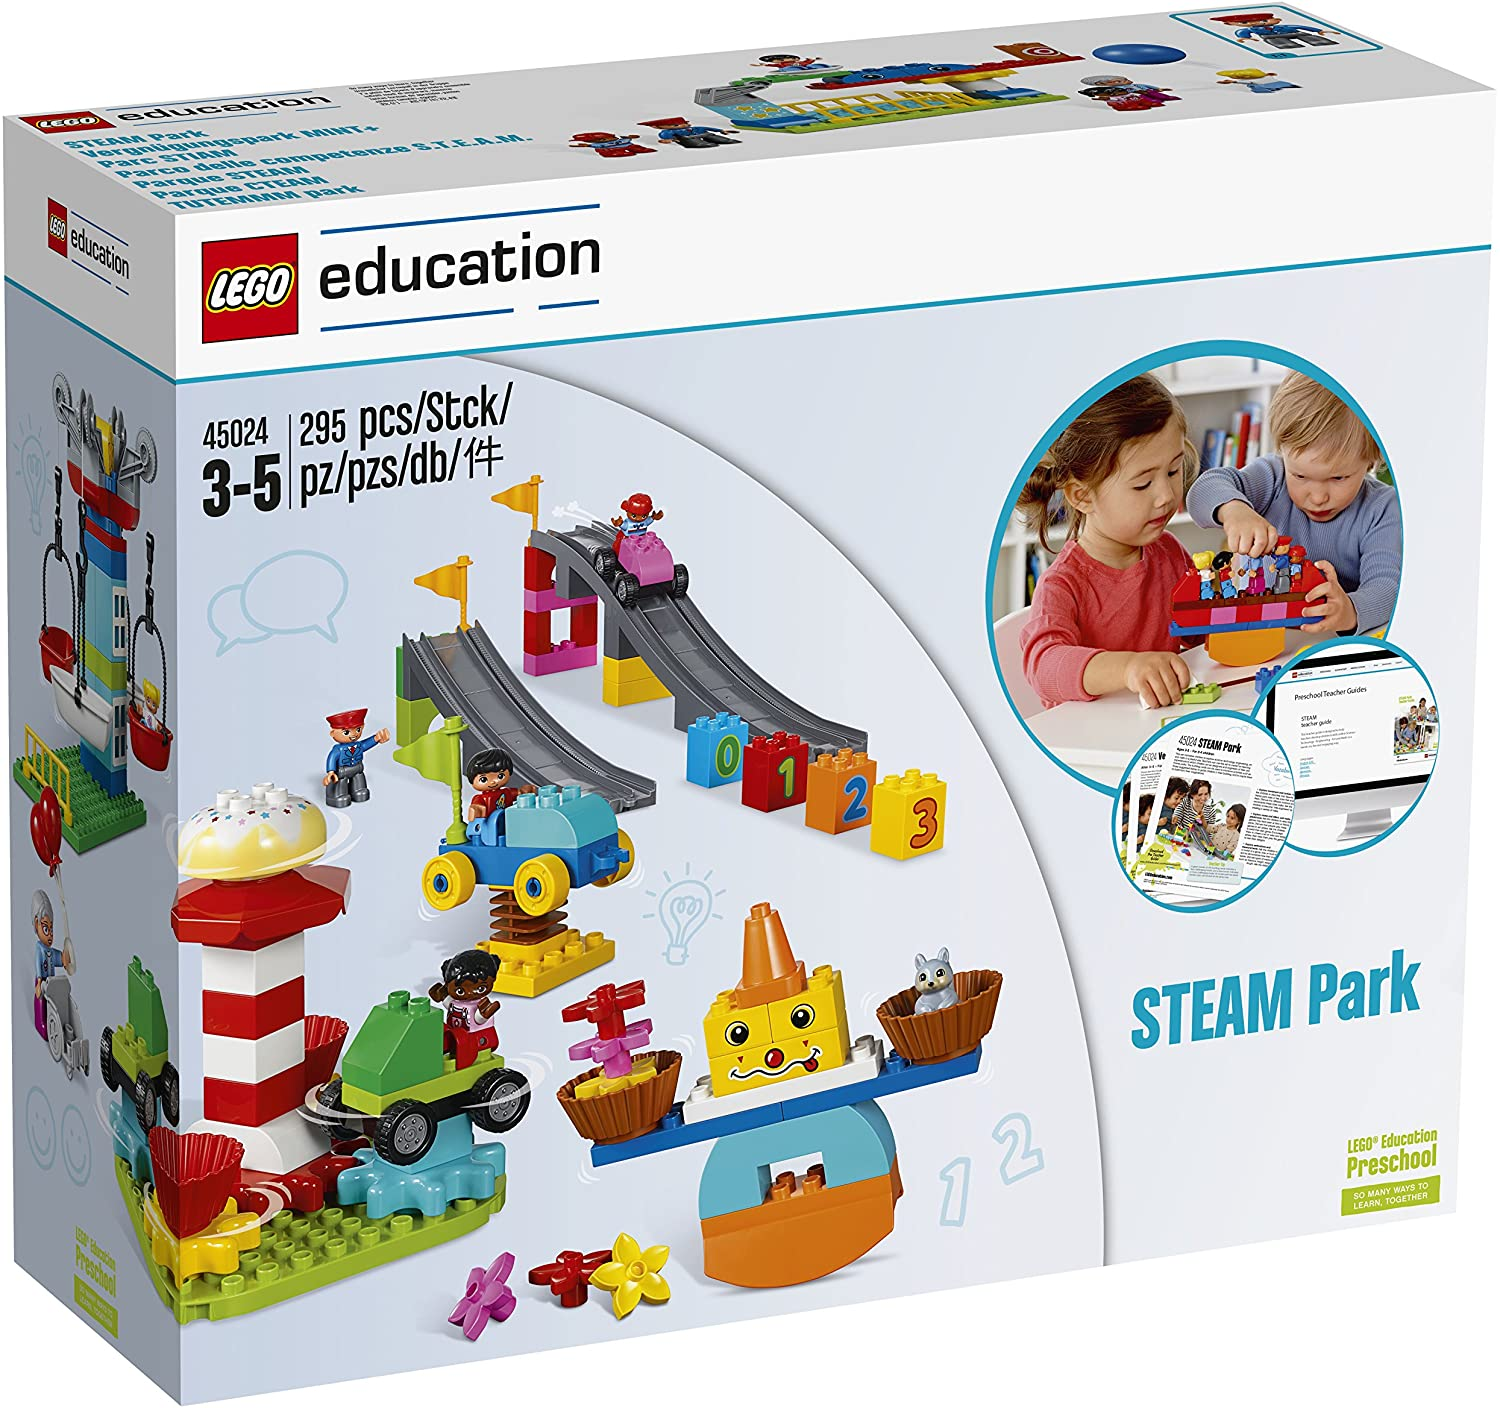 STEAM Park by LEGO Education 45024 Official Set